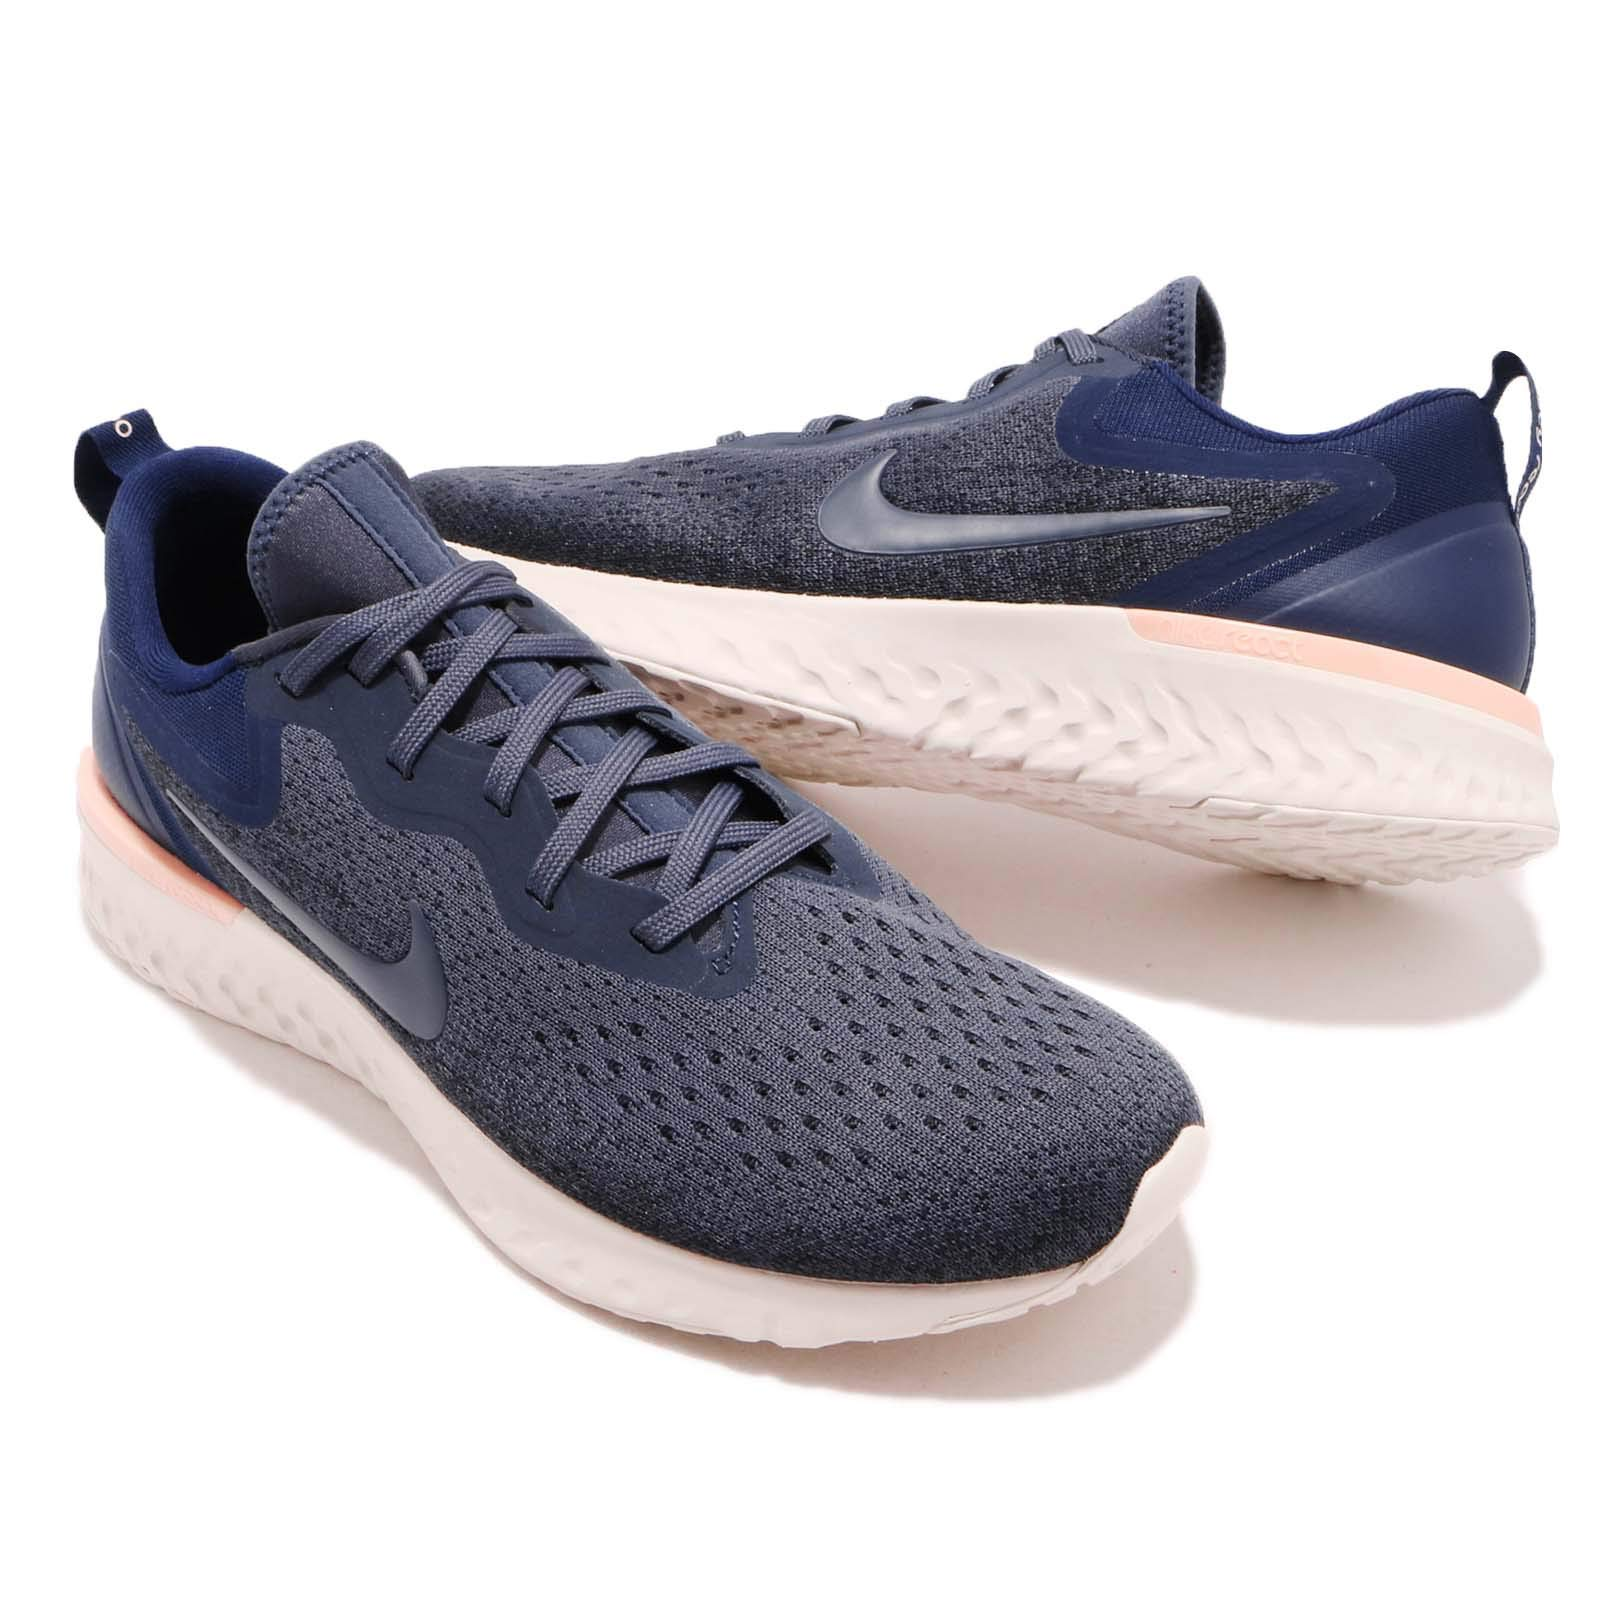 Nike Odyssey React Mens Running Trainers AO9819 Sneakers Shoes (UK 6 US 6.5 EU 39, Thunder Blue 403) by Nike (Image #7)